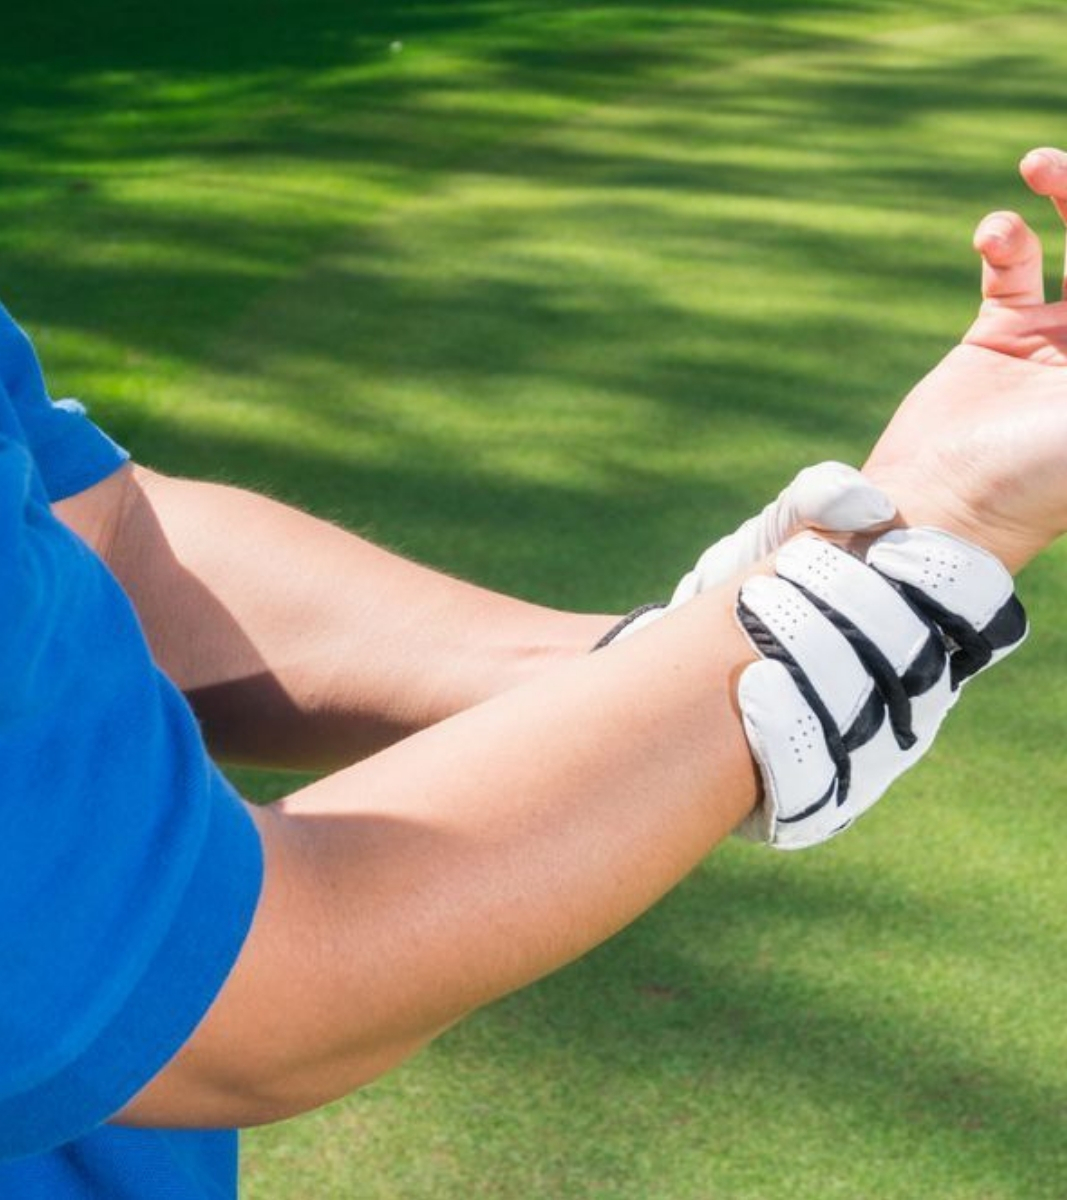 Ulna tunnel syndrome of the hand and the wrist | NSOC